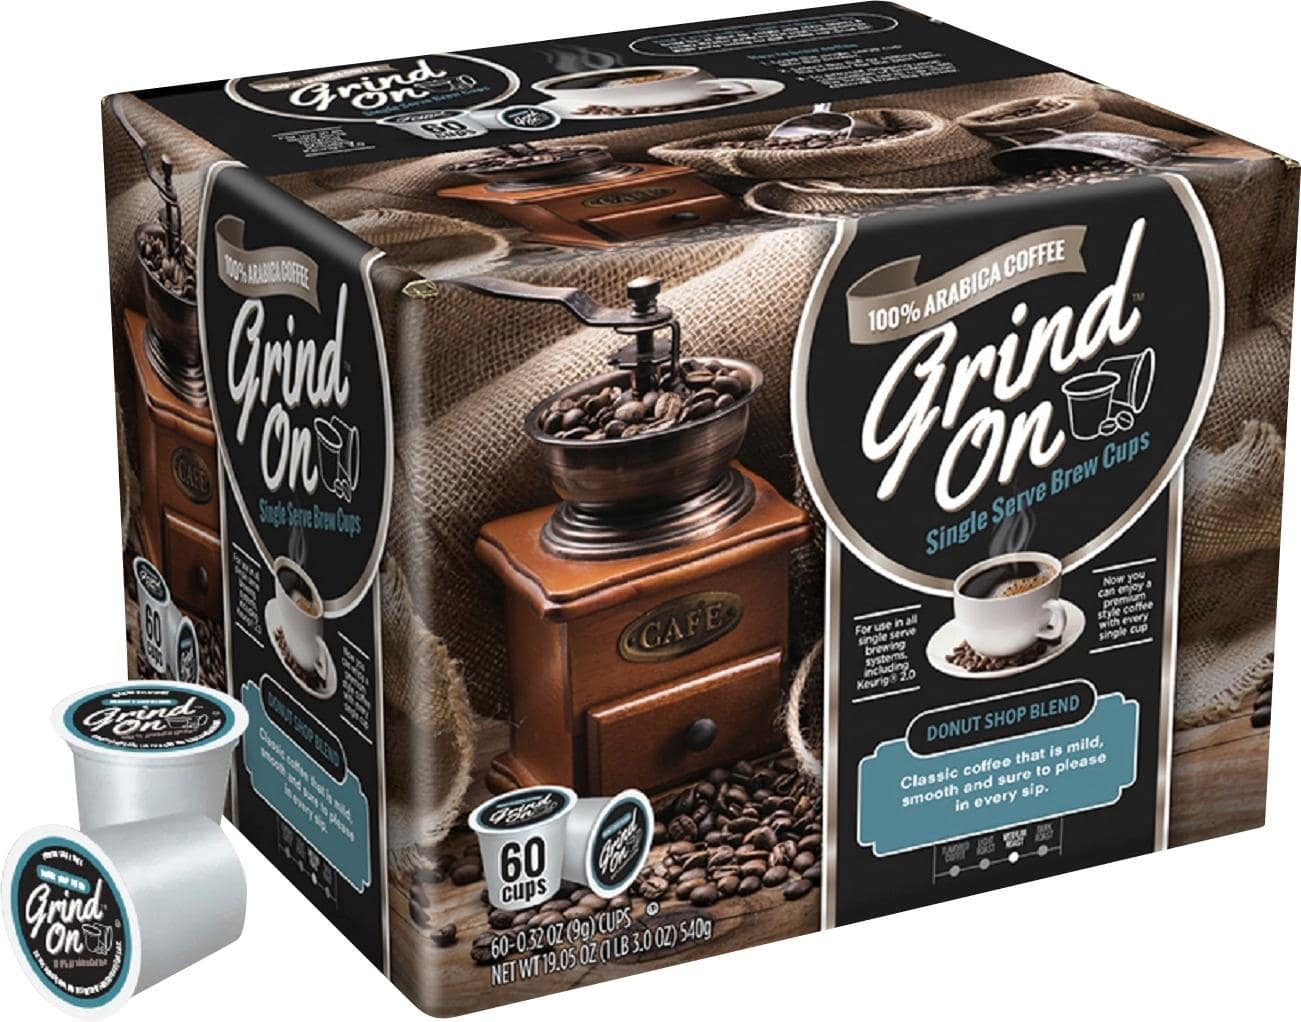 Victor Allen and Grind On K-cups deals at Best buy for $14.99 (60-pack) and $19.99 (80-pack)